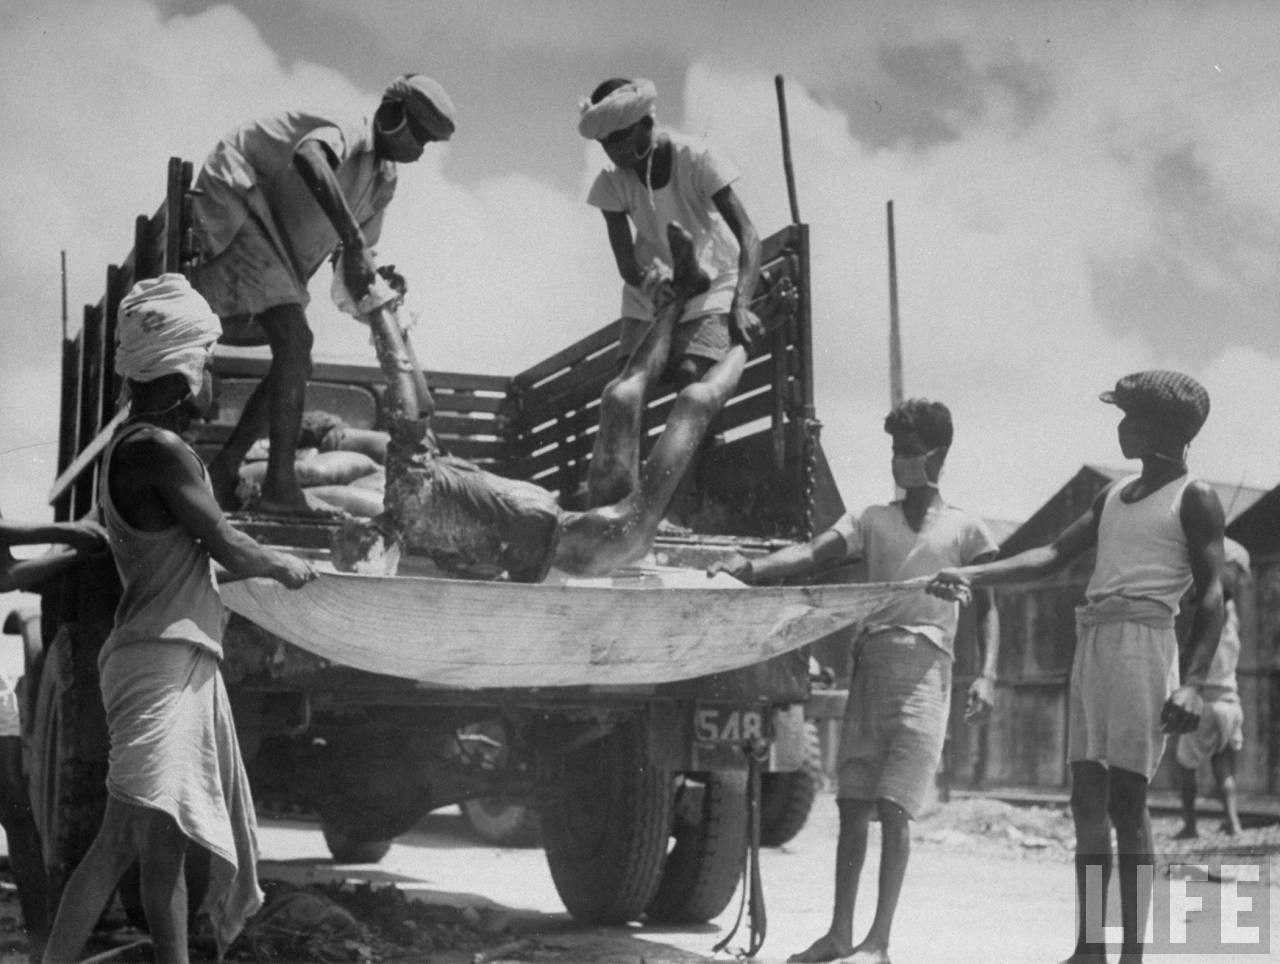 Men unloading corpses from truck in preparation for cremation after bloody rioting